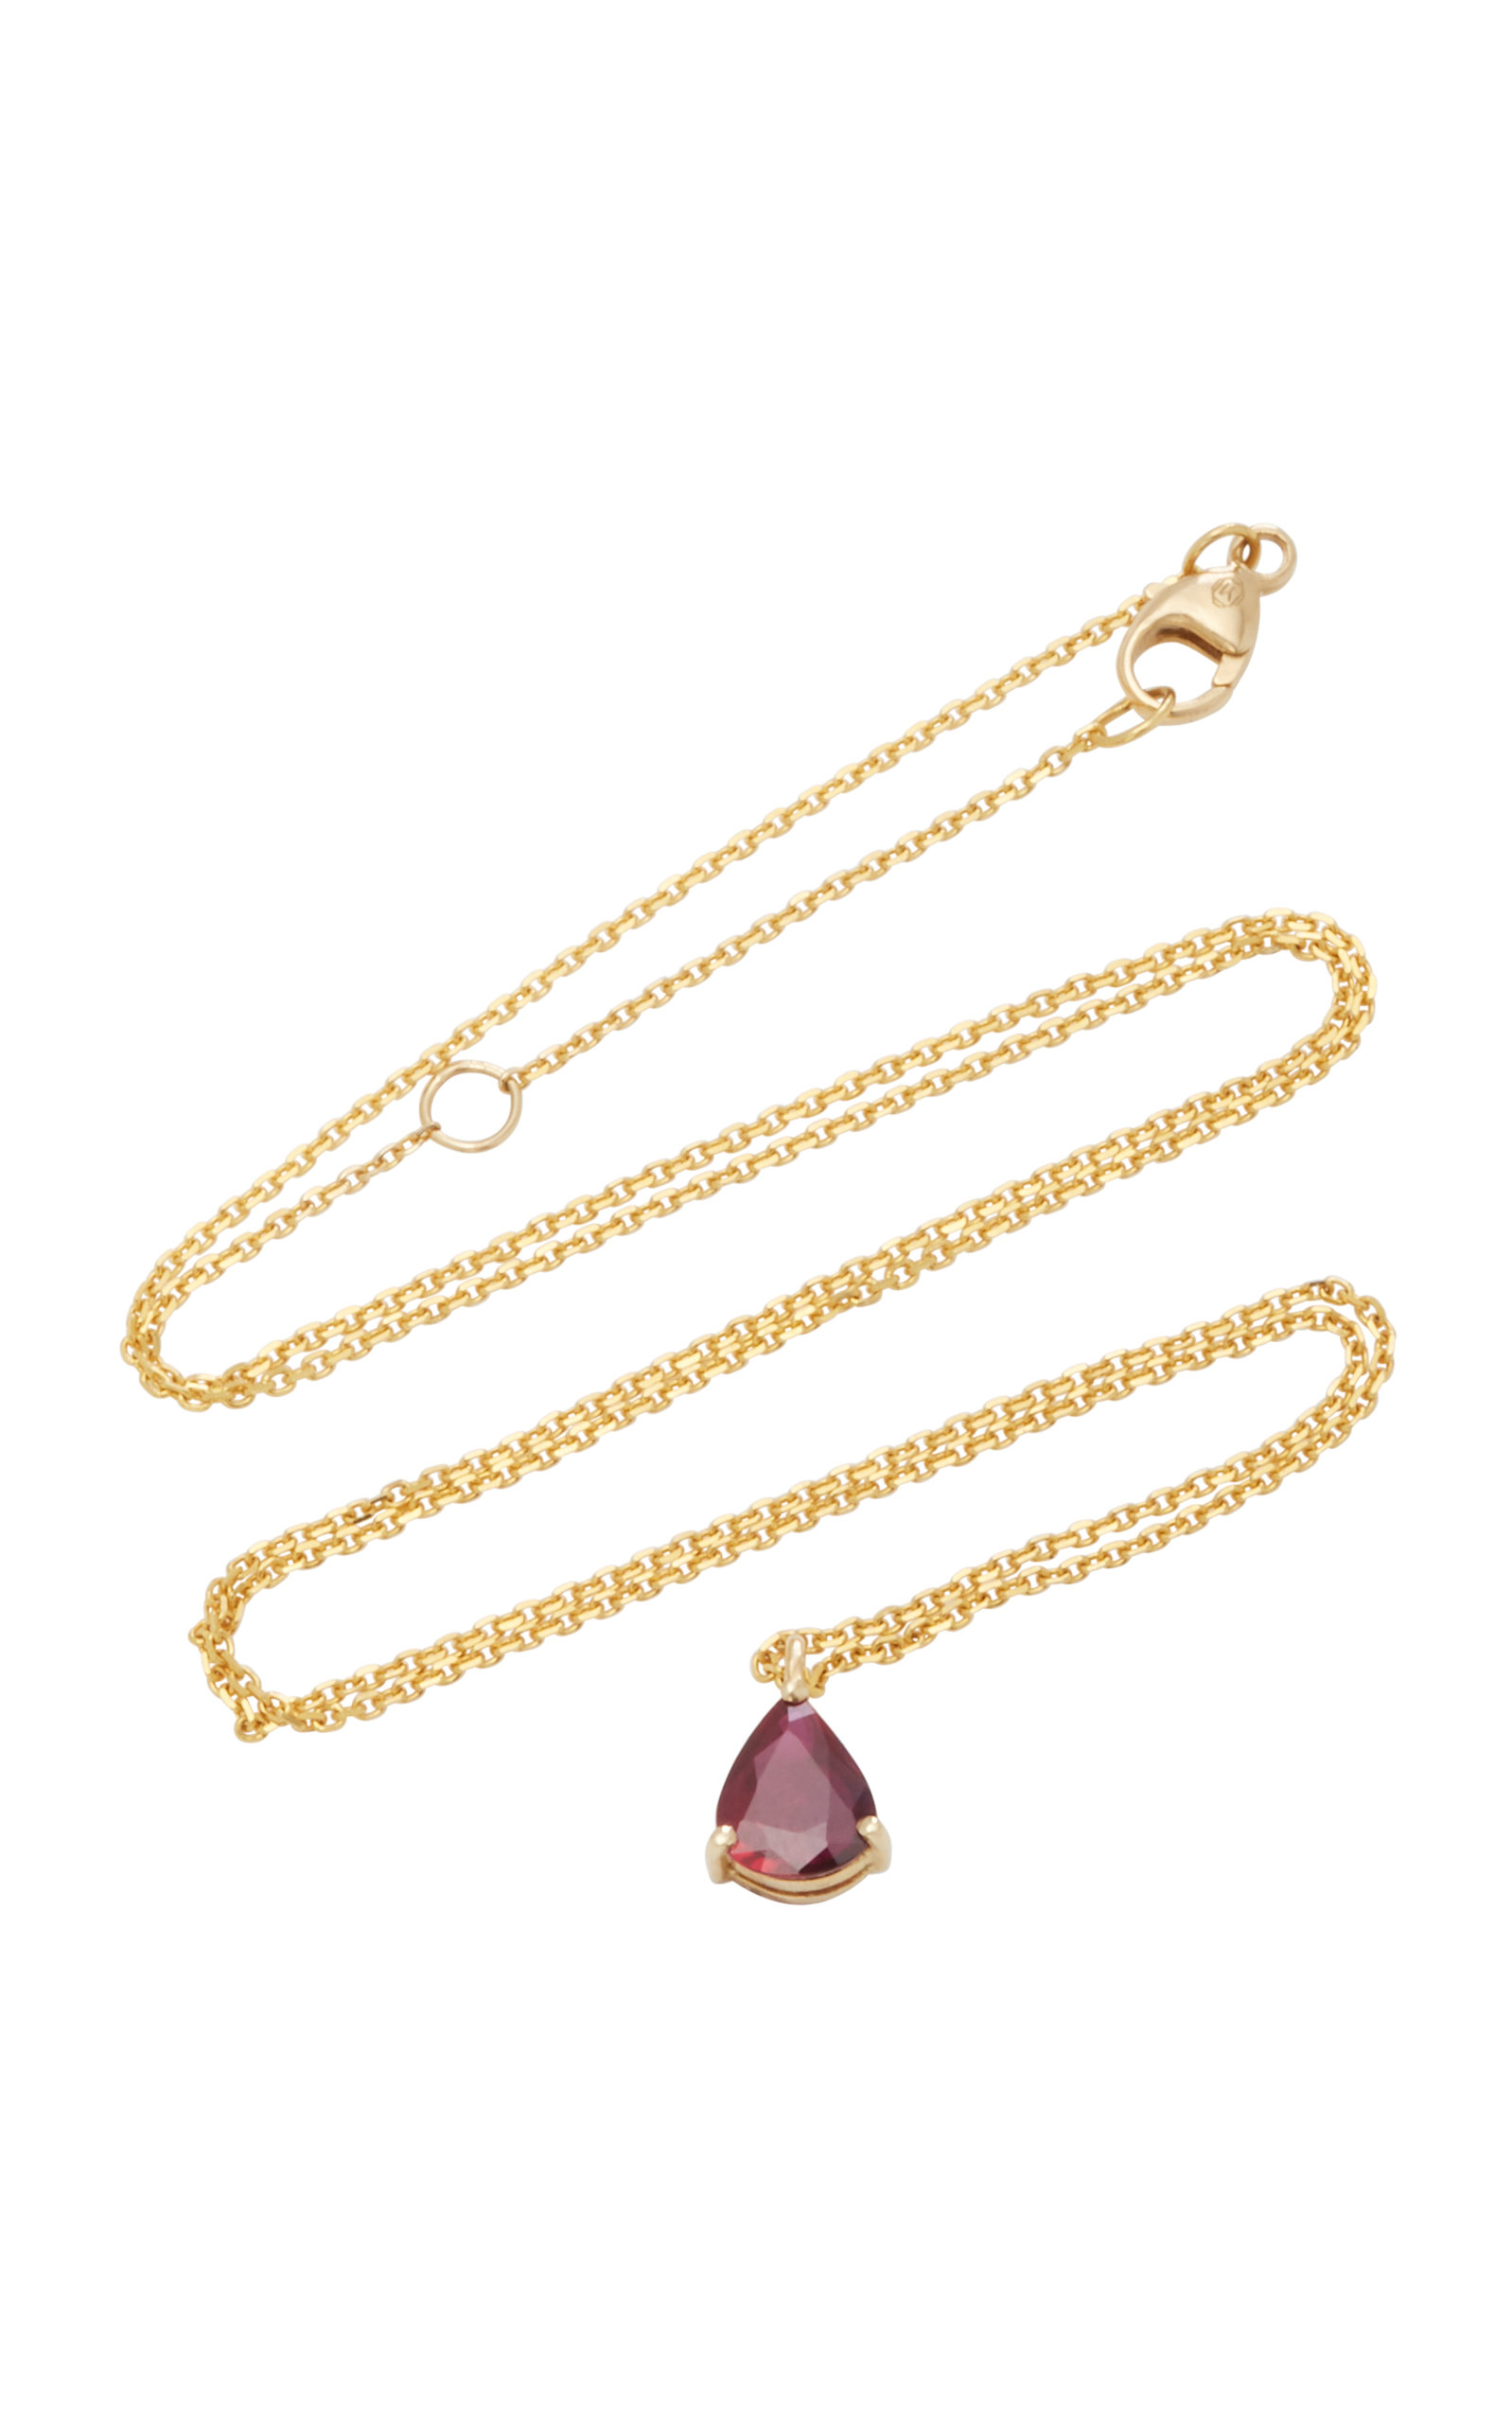 YI COLLECTION 18K Gold Ruby Necklace in Red